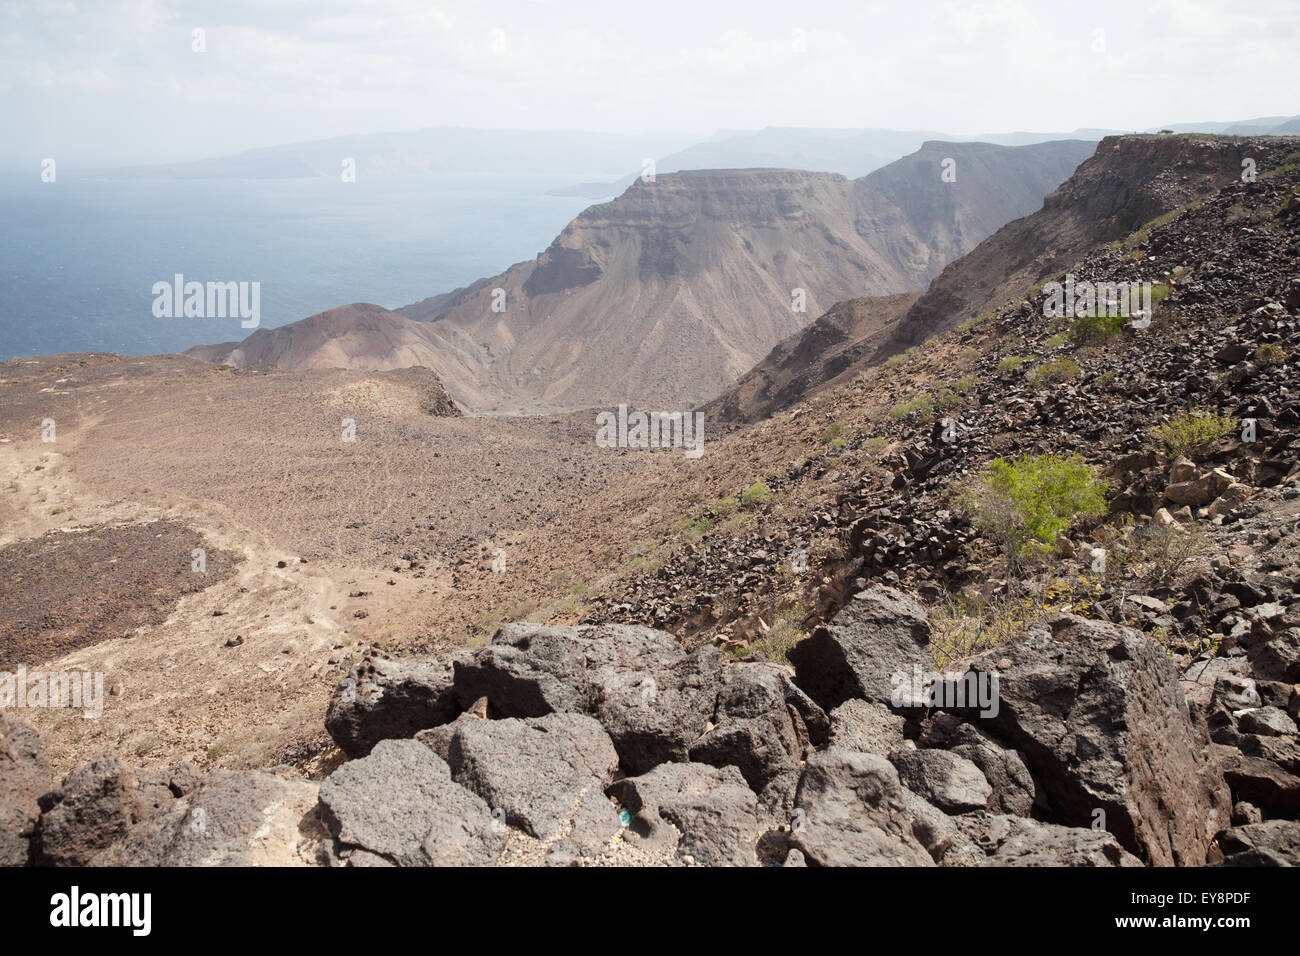 View into the Bay of Ghoubbet (Bay of Demons), Gulf of Tadjoura; Djibouti - Stock Image